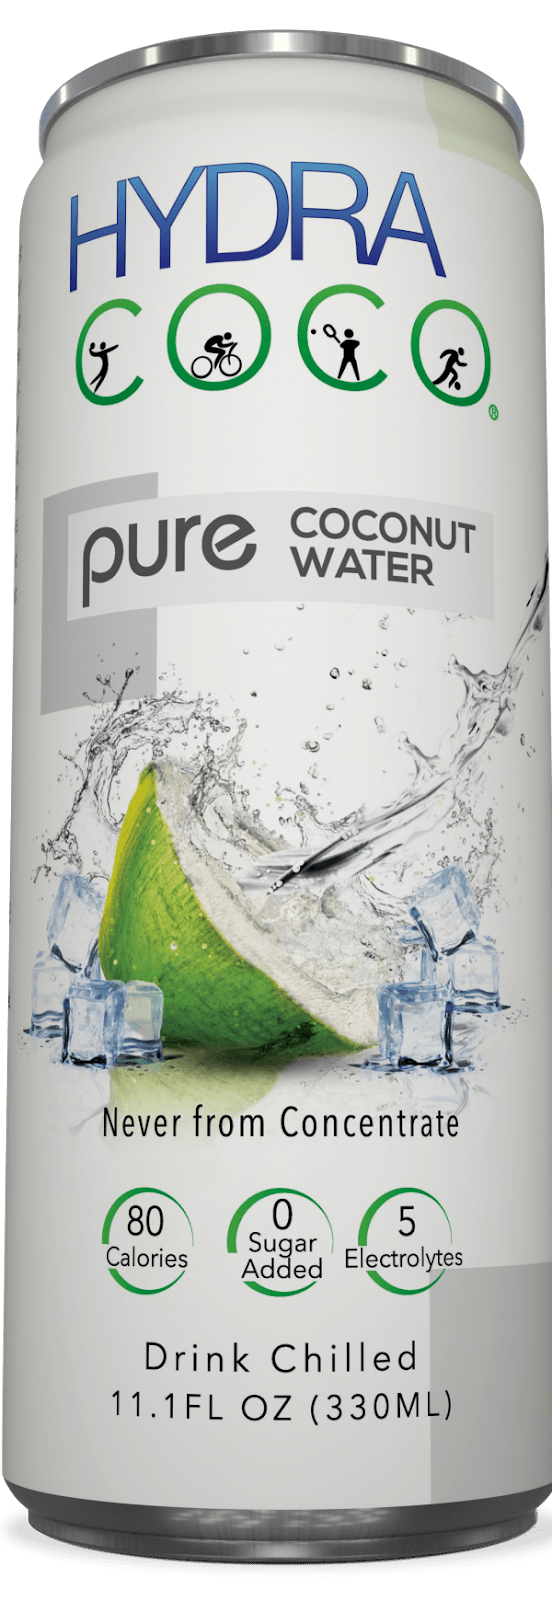 Is Pure Coconut Water Beneficial For You?